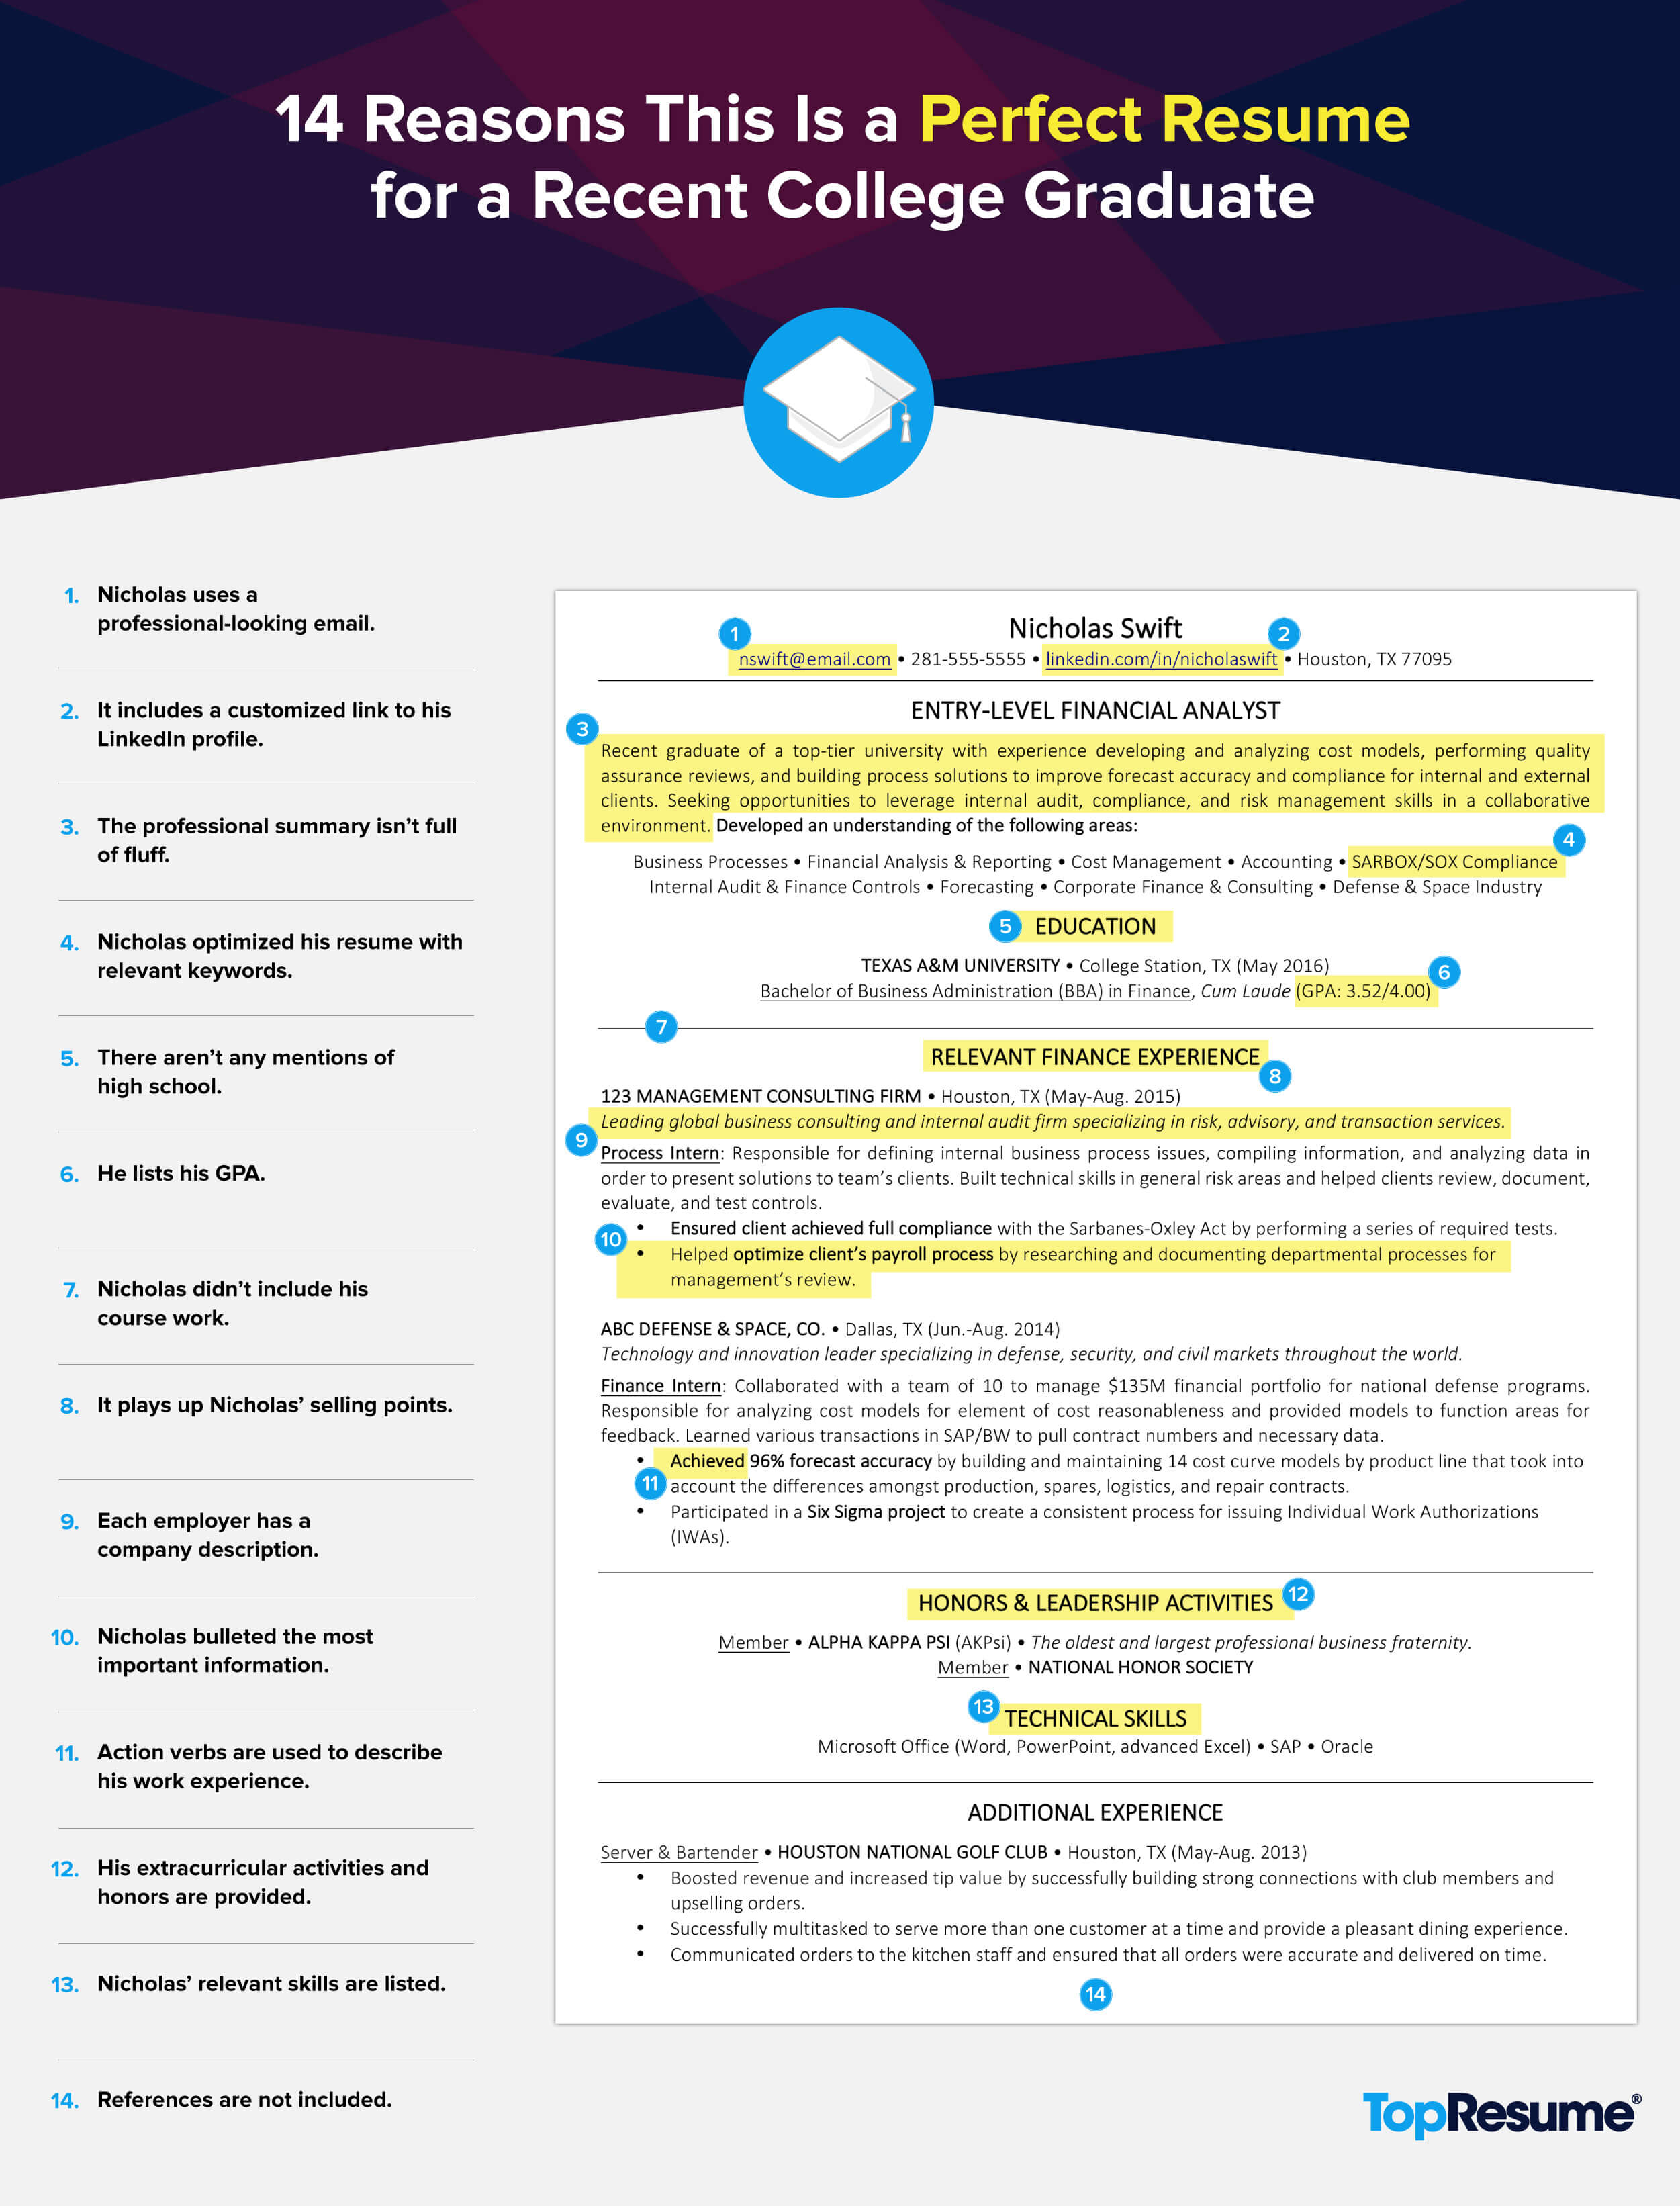 berenson gave our sample resume a complete makeover the end result